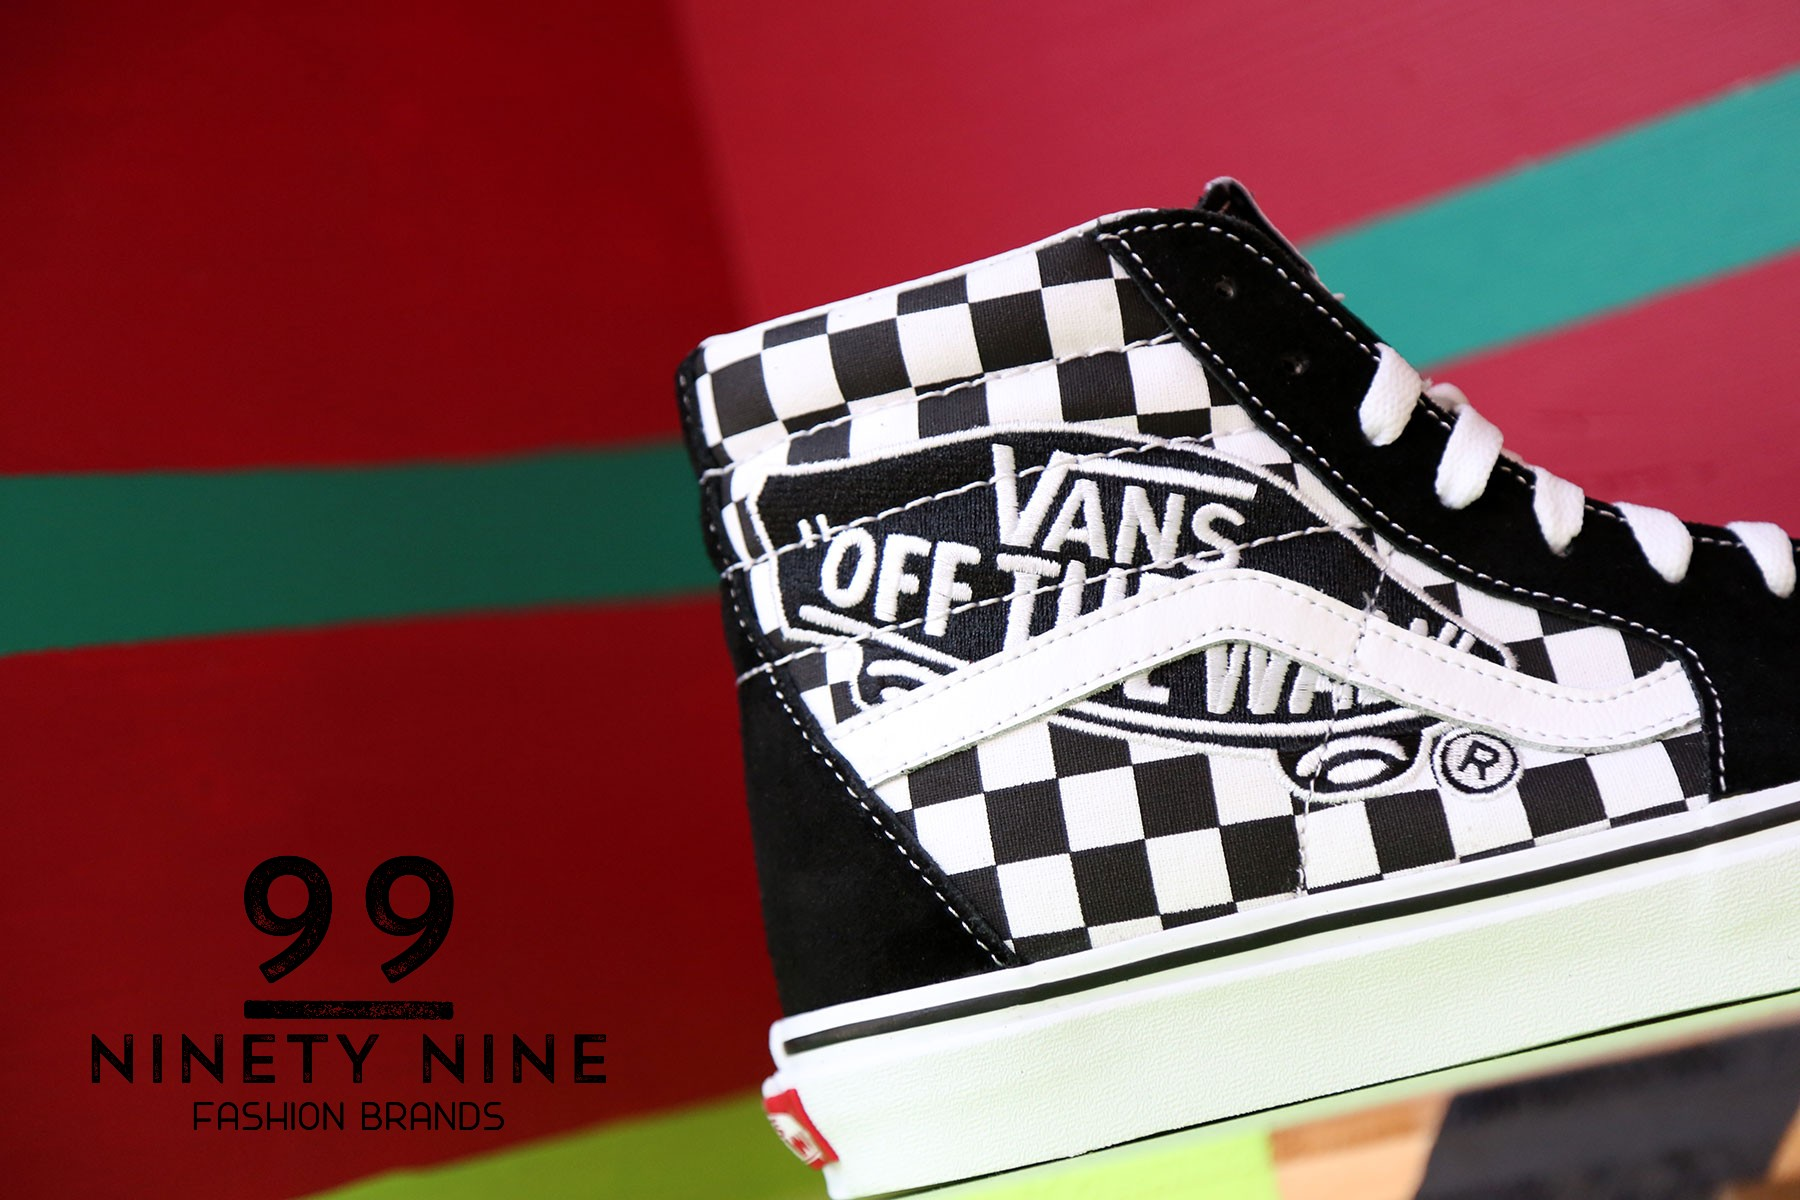 Vans Sneakers on sale at 99 Fashion Brands